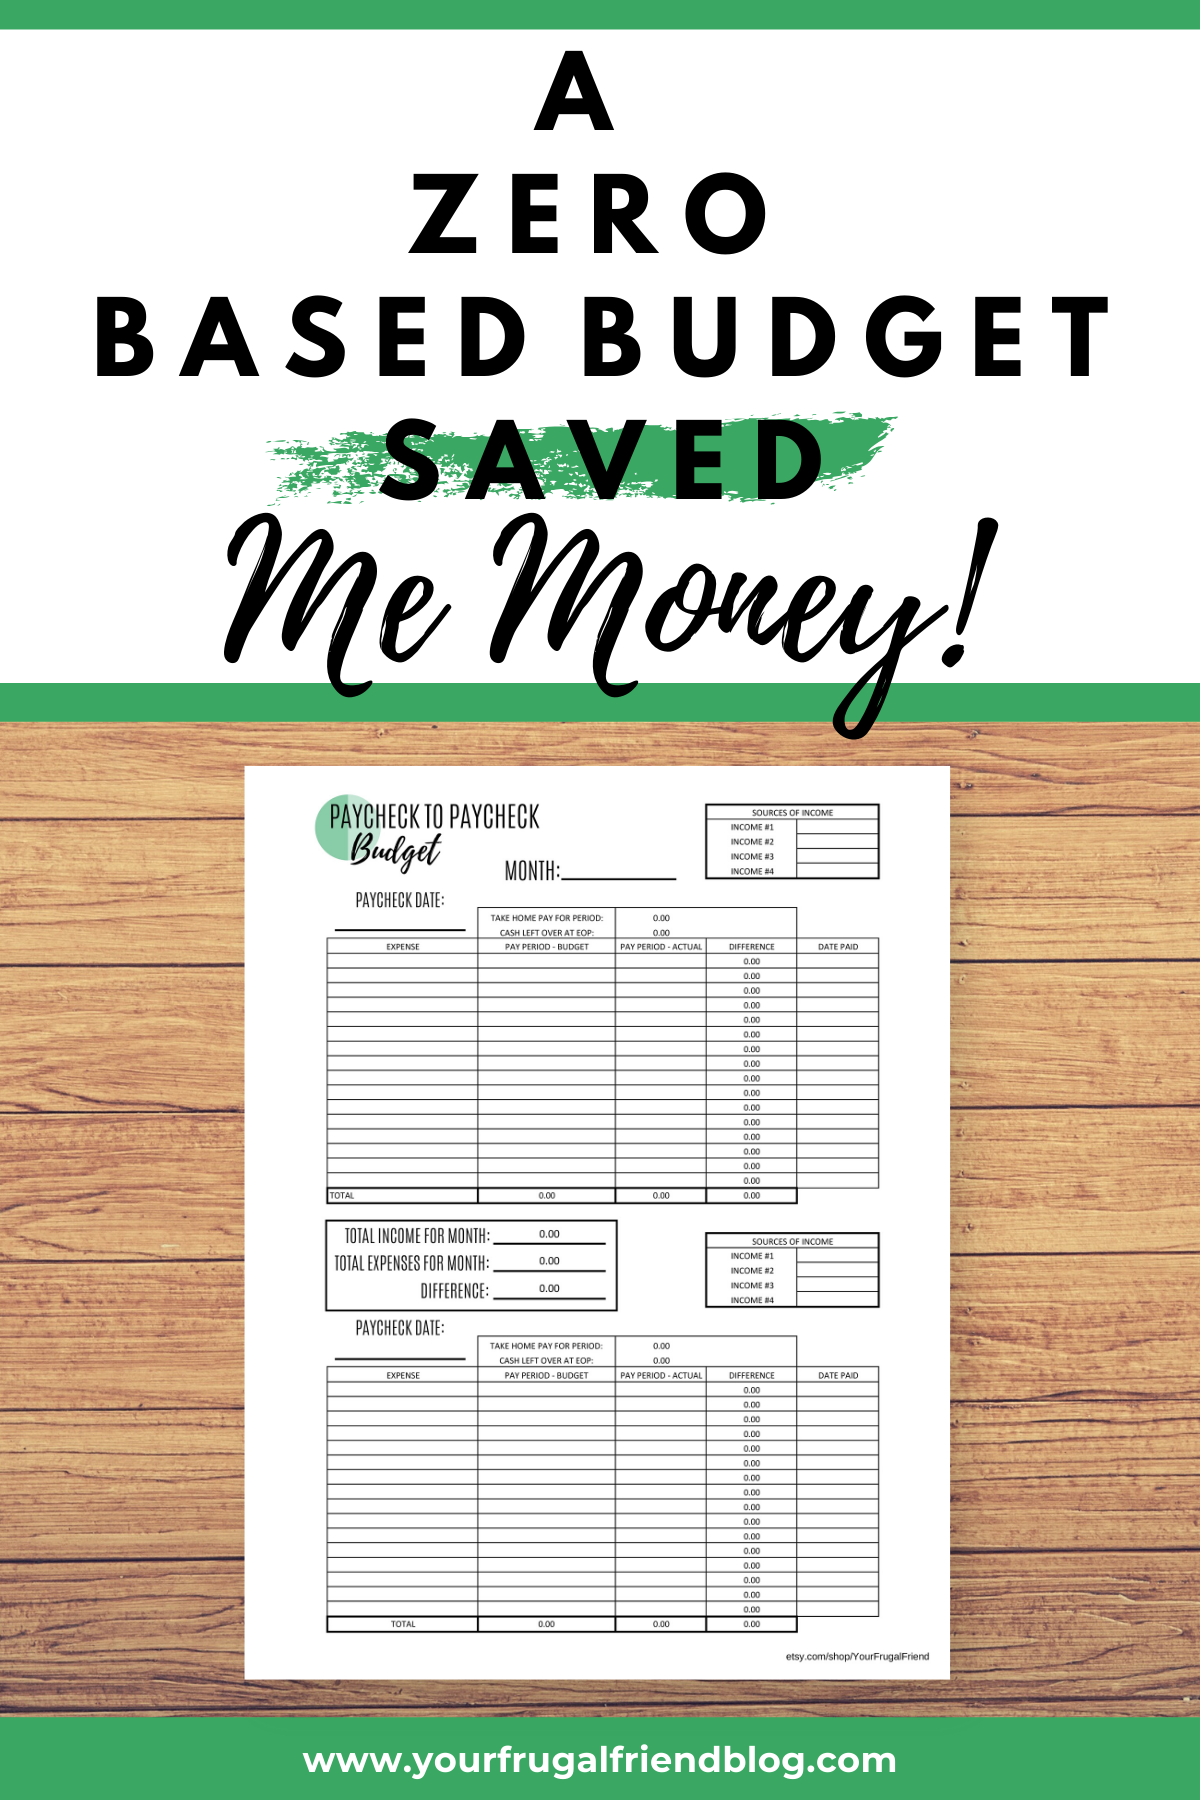 How To Use A Zero Based Budget In